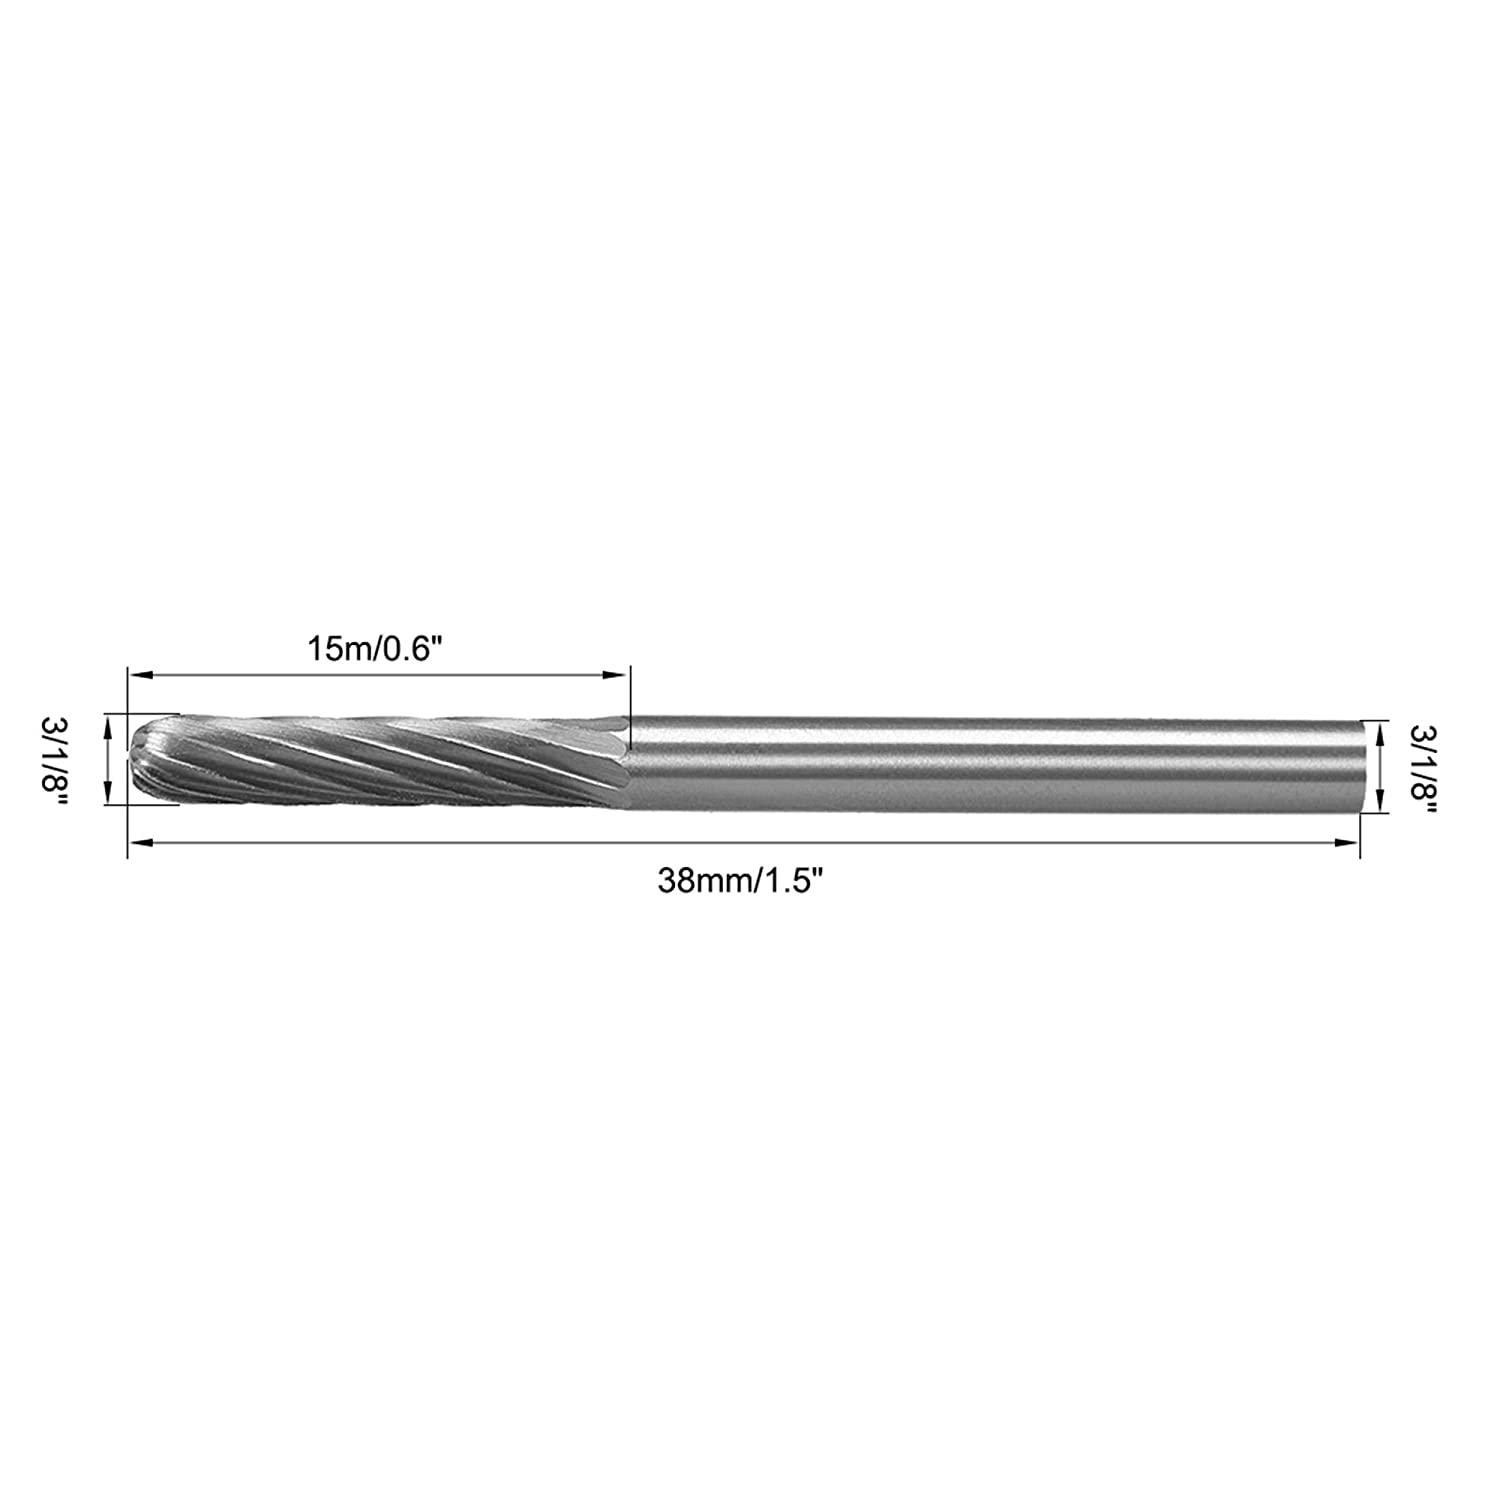 uxcell Carbide Burrs Single Cut Rotary Burrs Files Cylinder Shape Cutting Burrs with 1//8 Shank 1//8 Head for Die Grinder Bits 2pcs